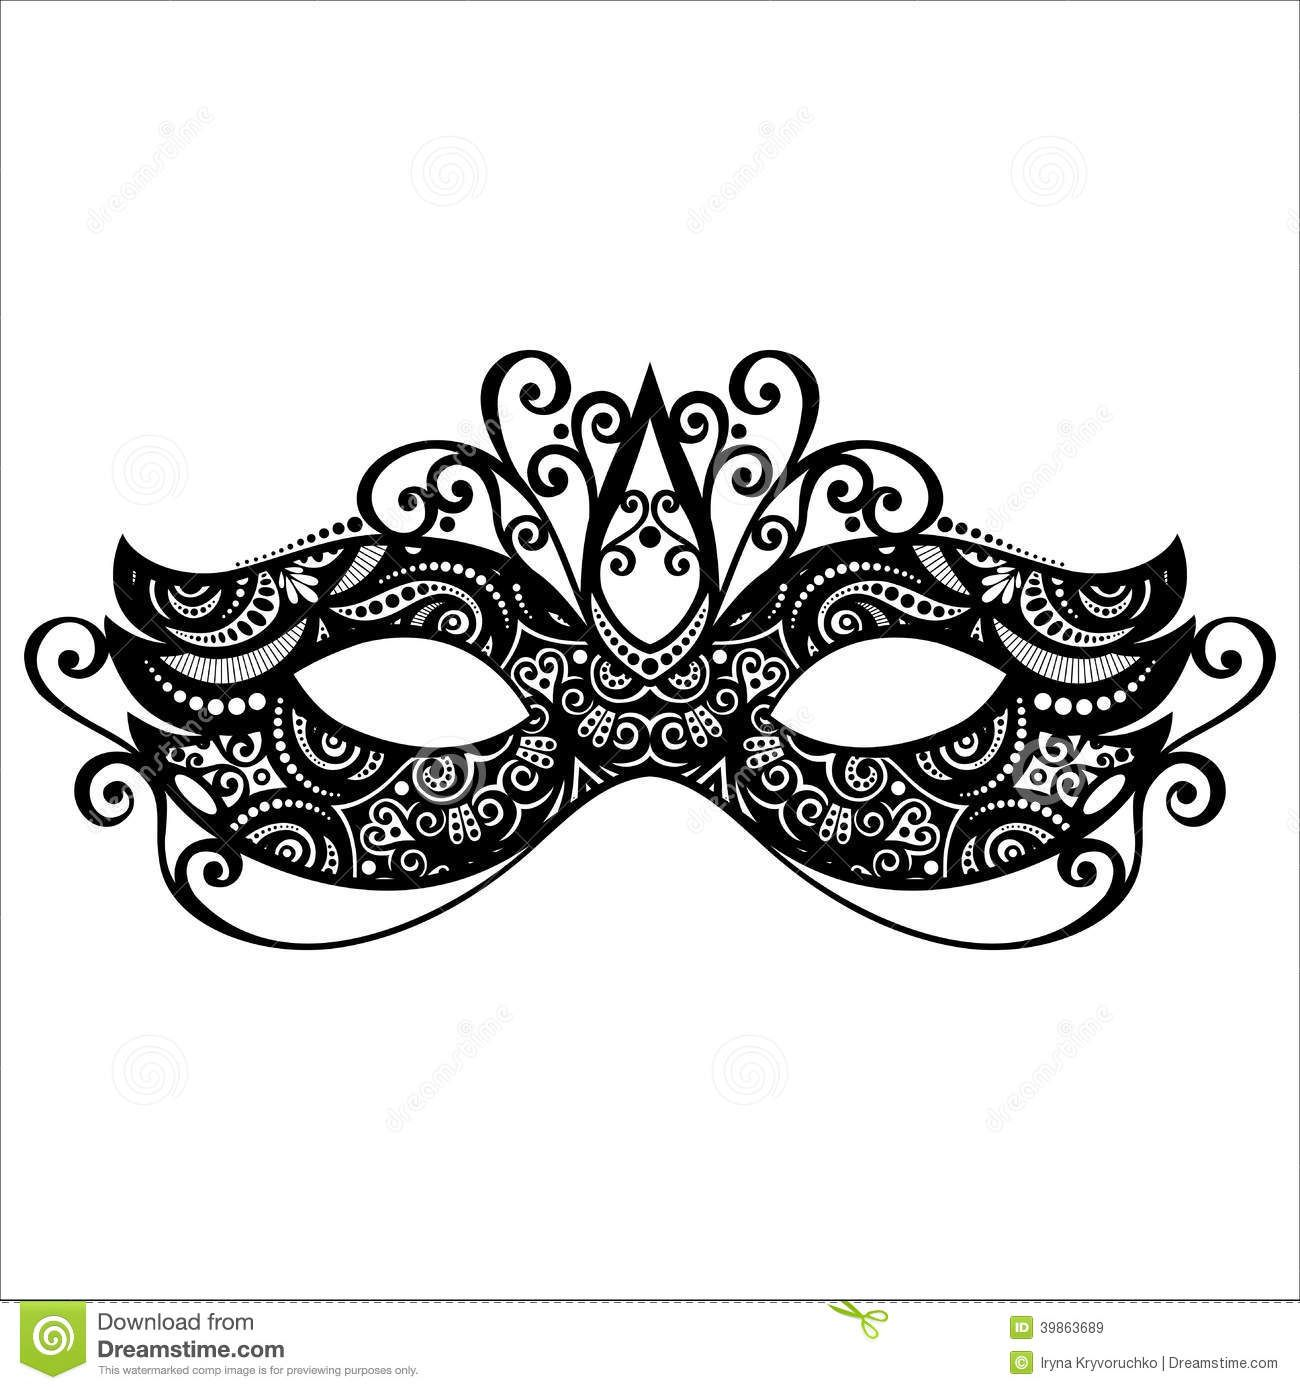 Masquerade Mask Designs | Beautiful Masquerade Mask ...